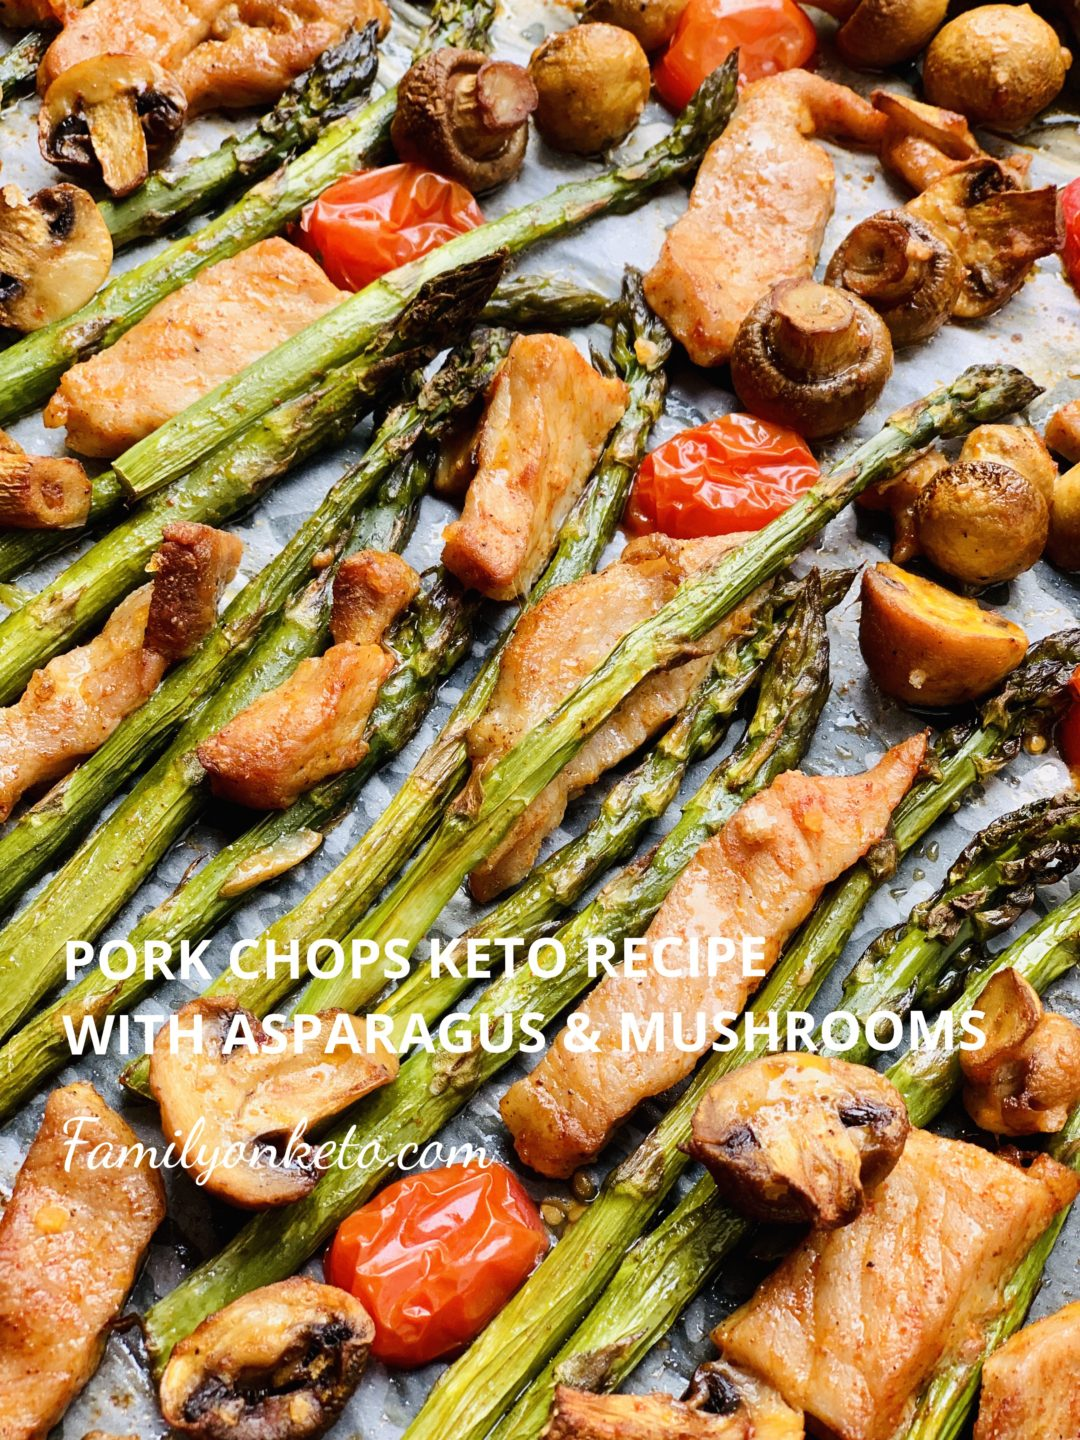 Picture of pork chops in a baking tray baked with asparagus, mushrooms and cherry tomatoes